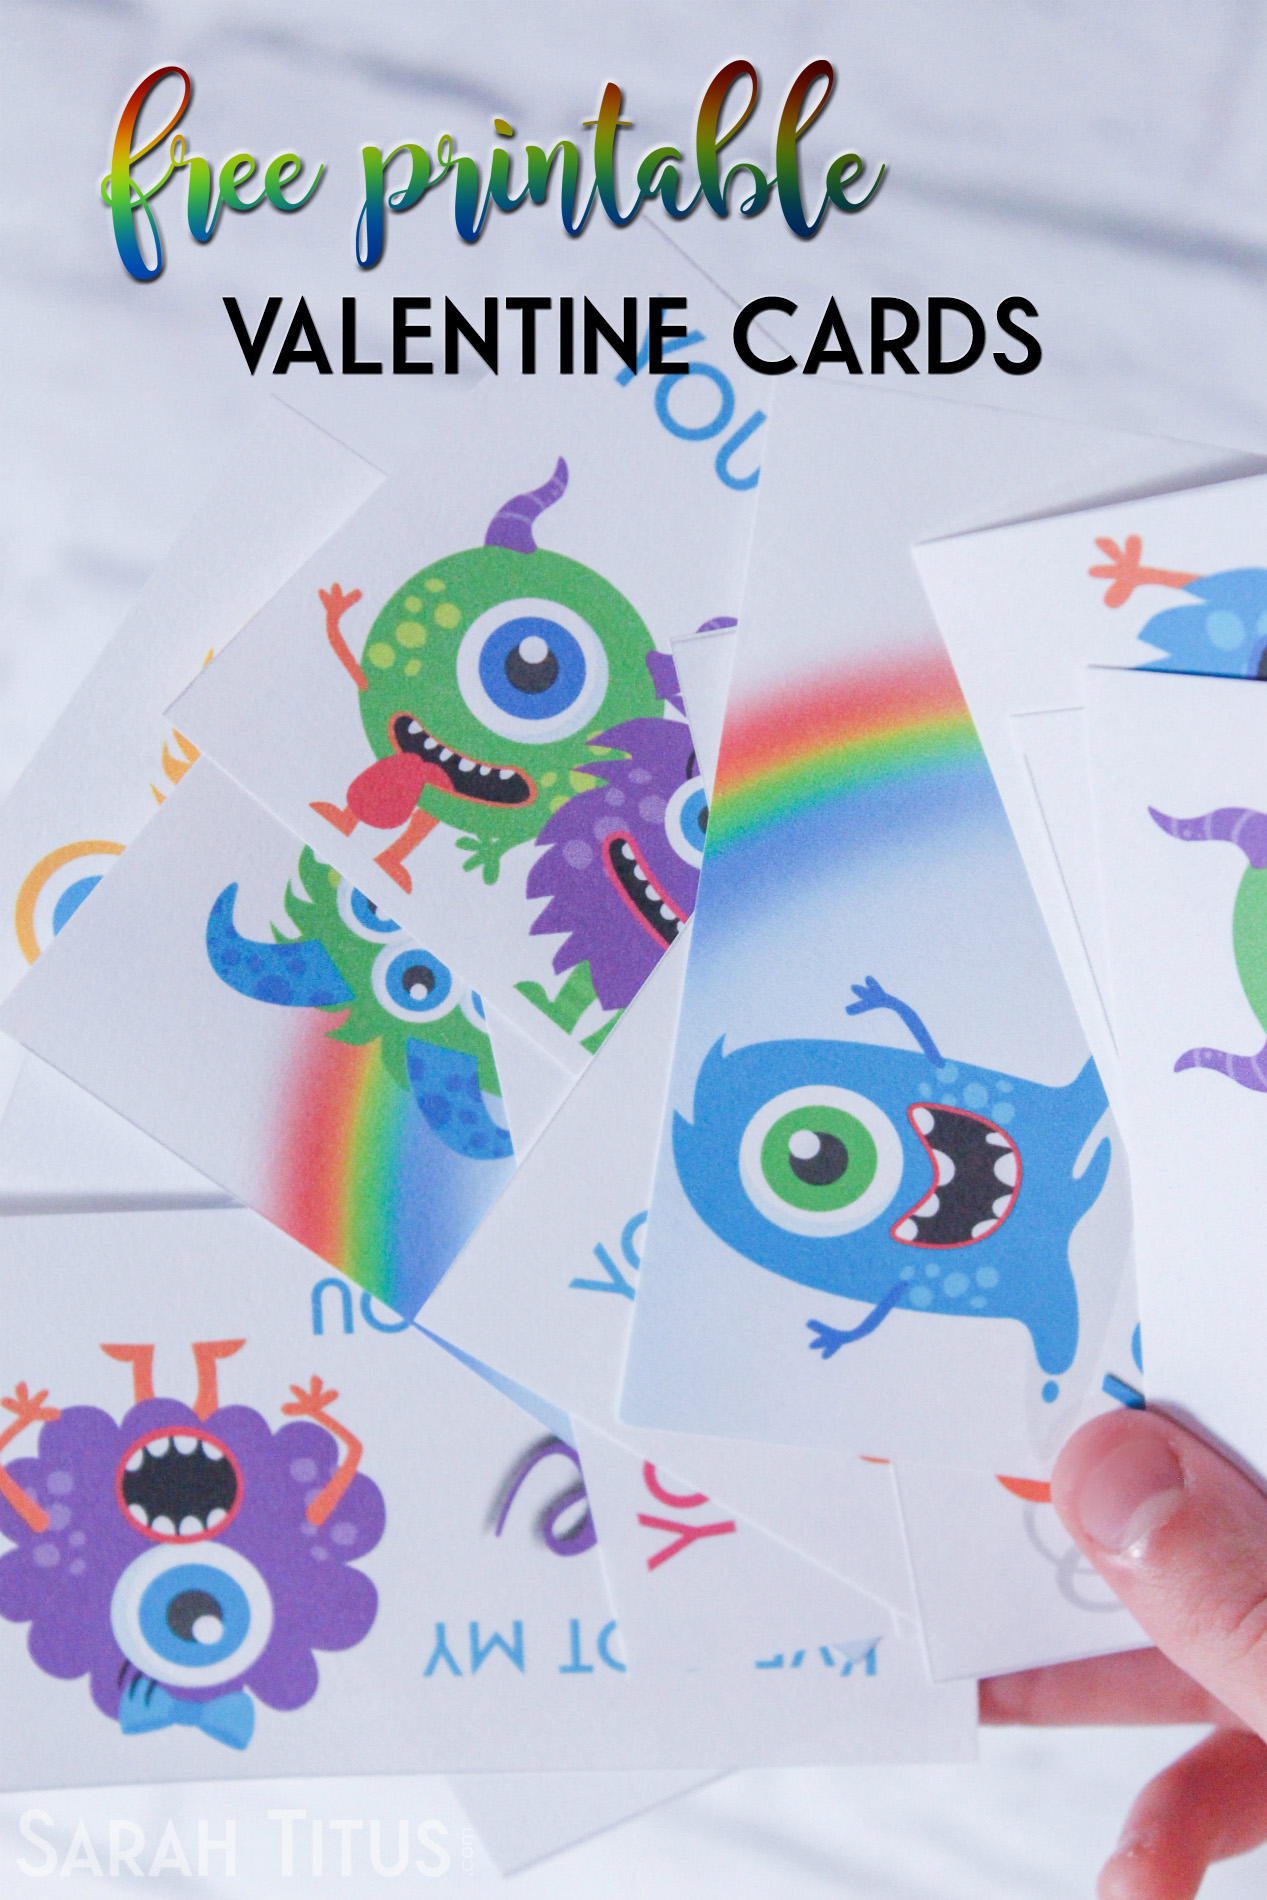 No newsletter sign up, no click bait, no gimmicks. Just straight up free printable valentine cards for your kids that are super cute.